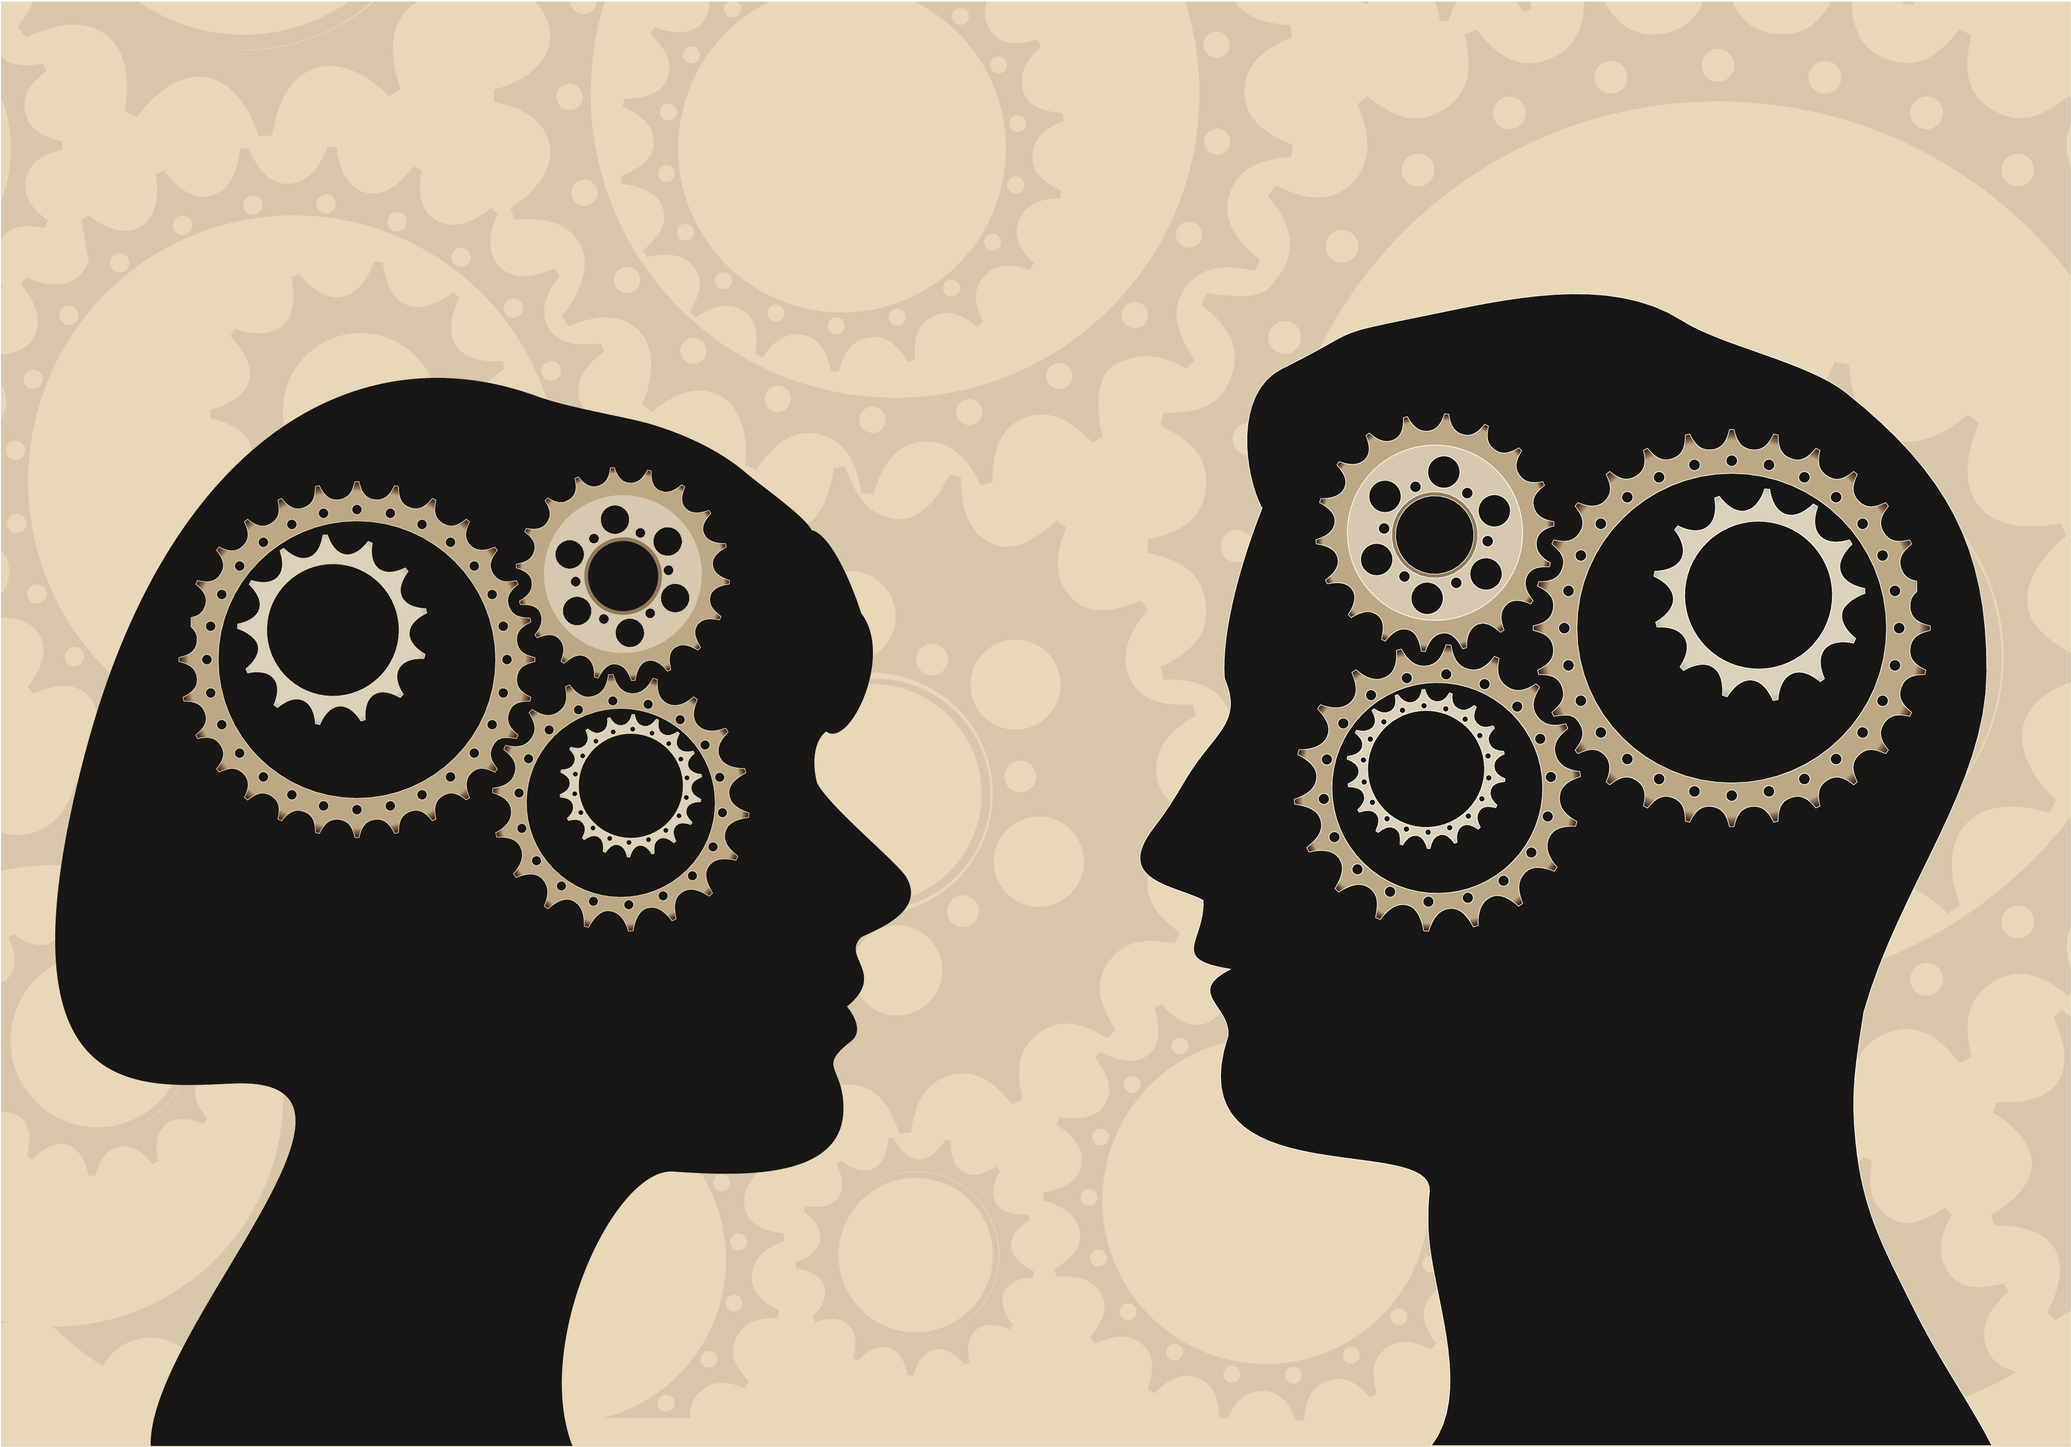 Differences between male and female brain area